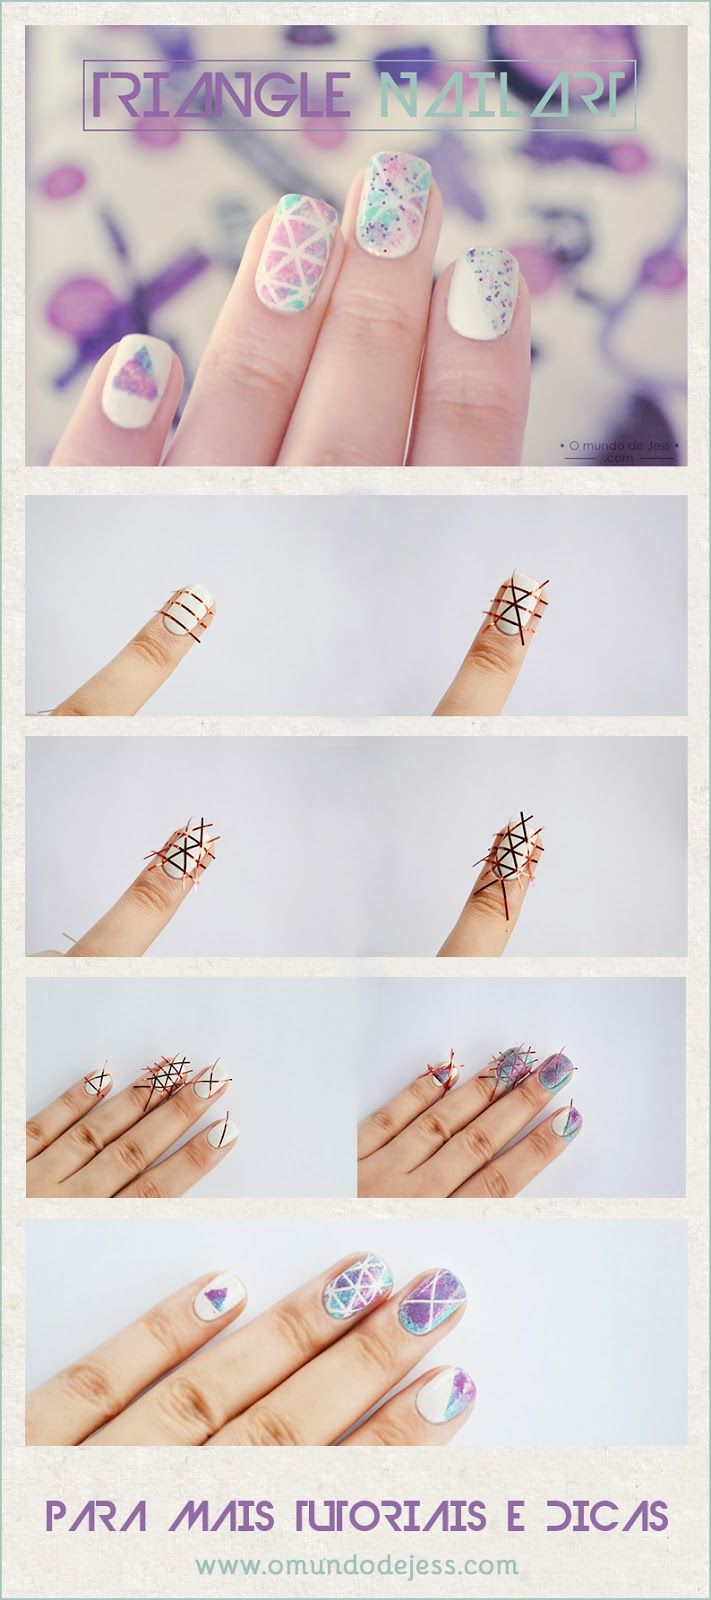 Triangle Nailart -